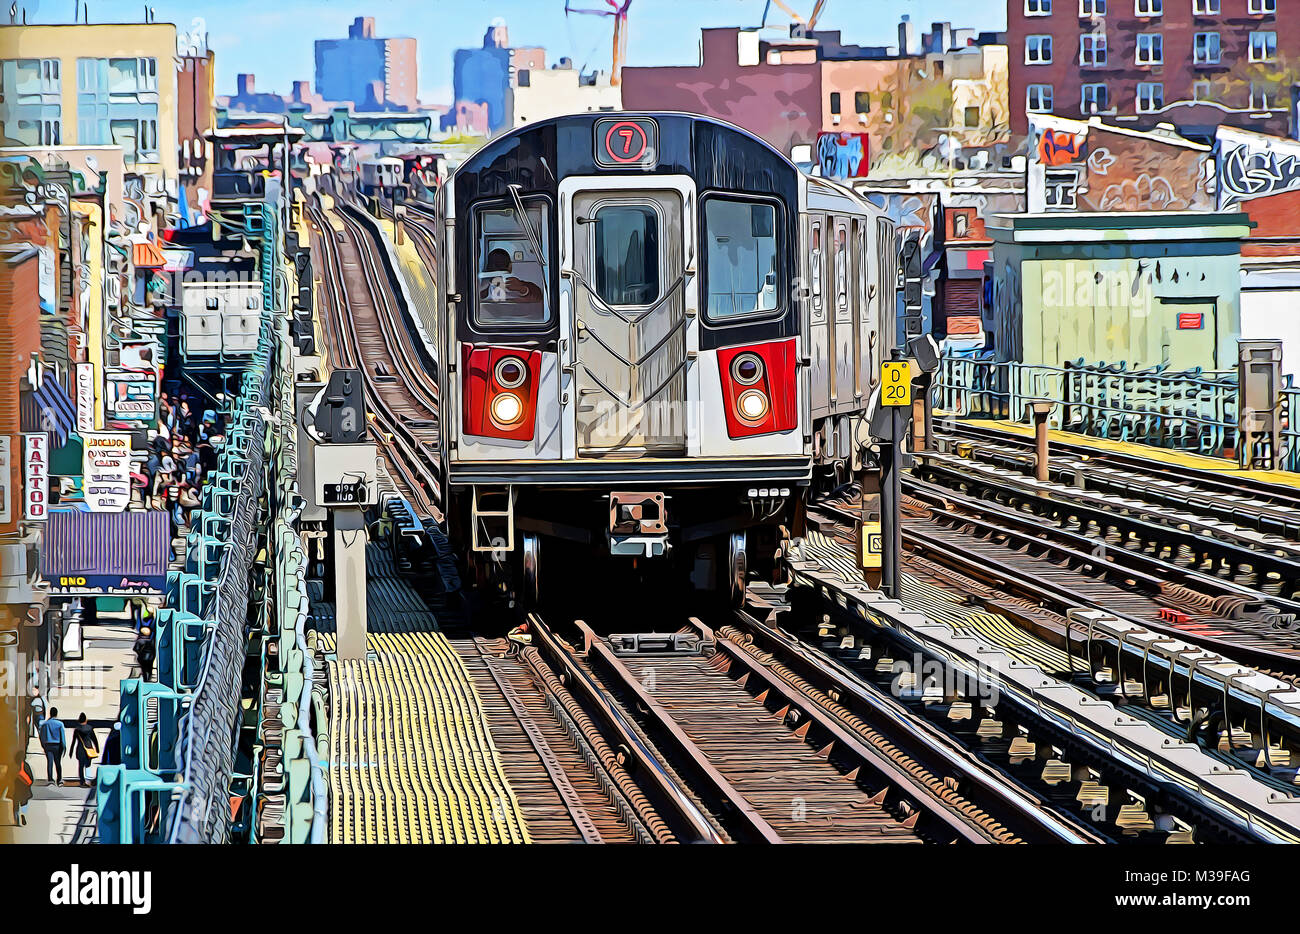 elevated train new york stock photos  u0026 elevated train new york stock images